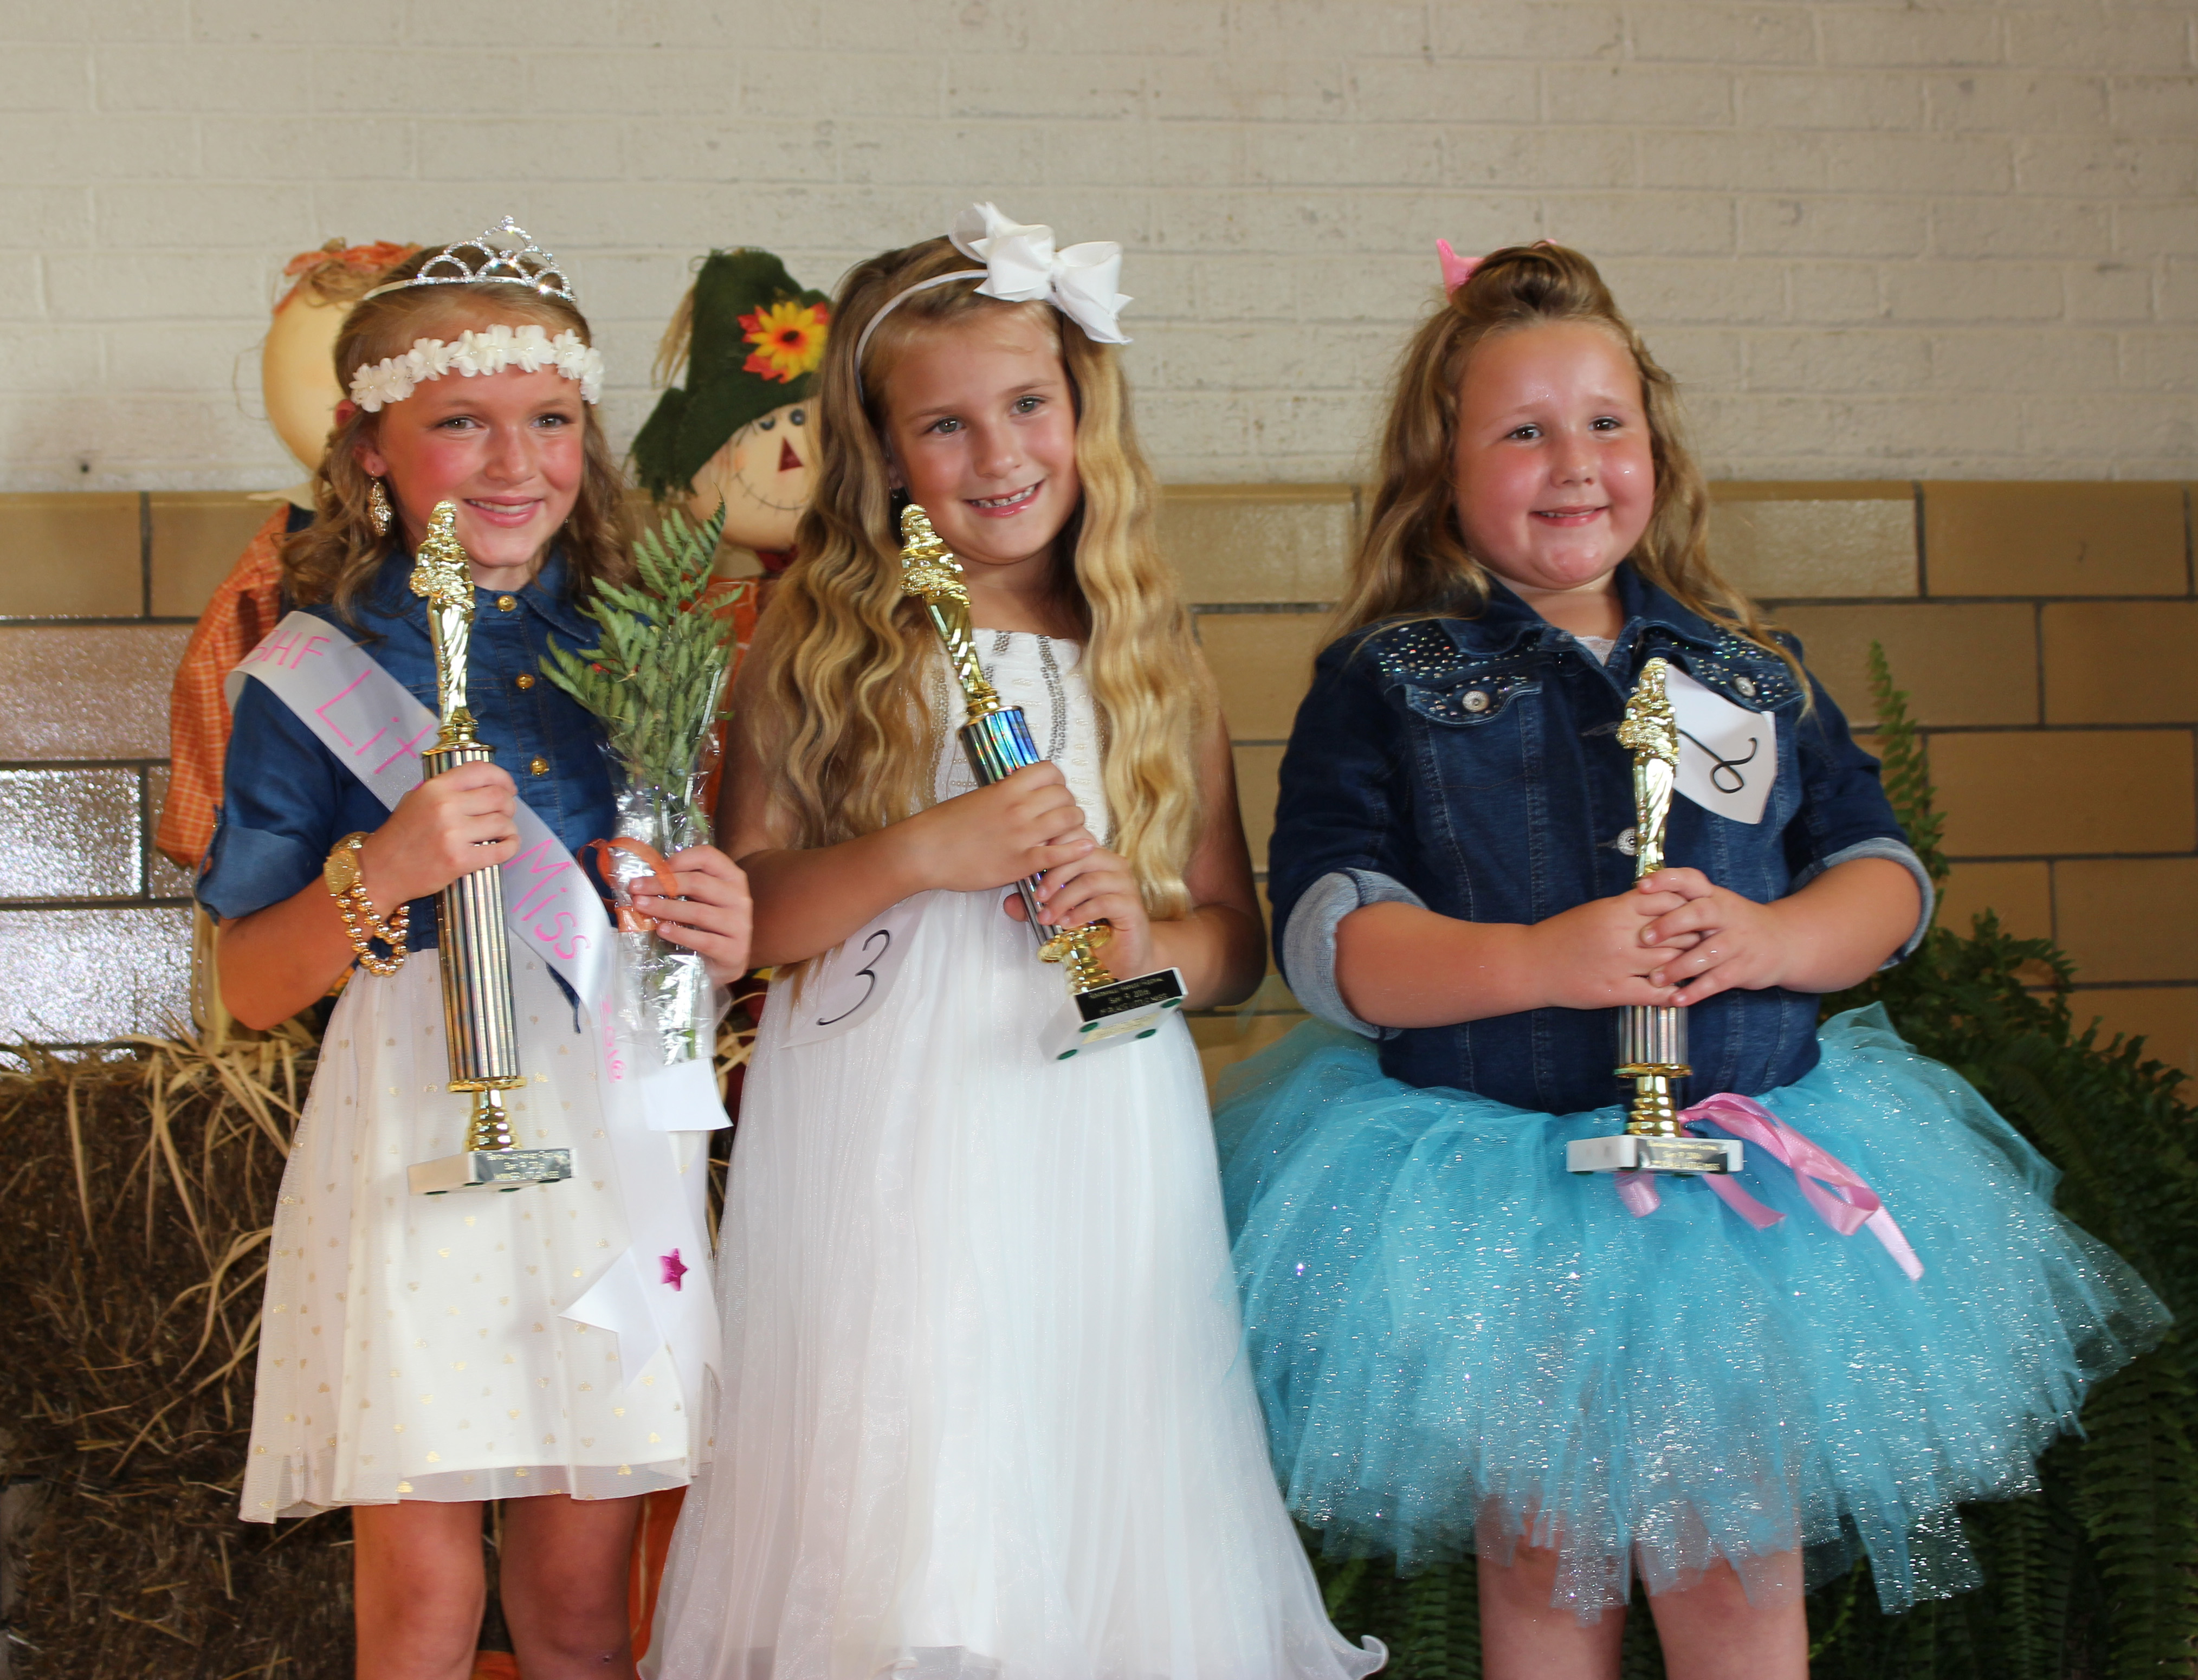 The winners in the Little Miss contest were, from left, Little Miss Jadelynn Conley, Second Place- Vacilya Begley, and Third Place- Ashlyn Fitzgerald.